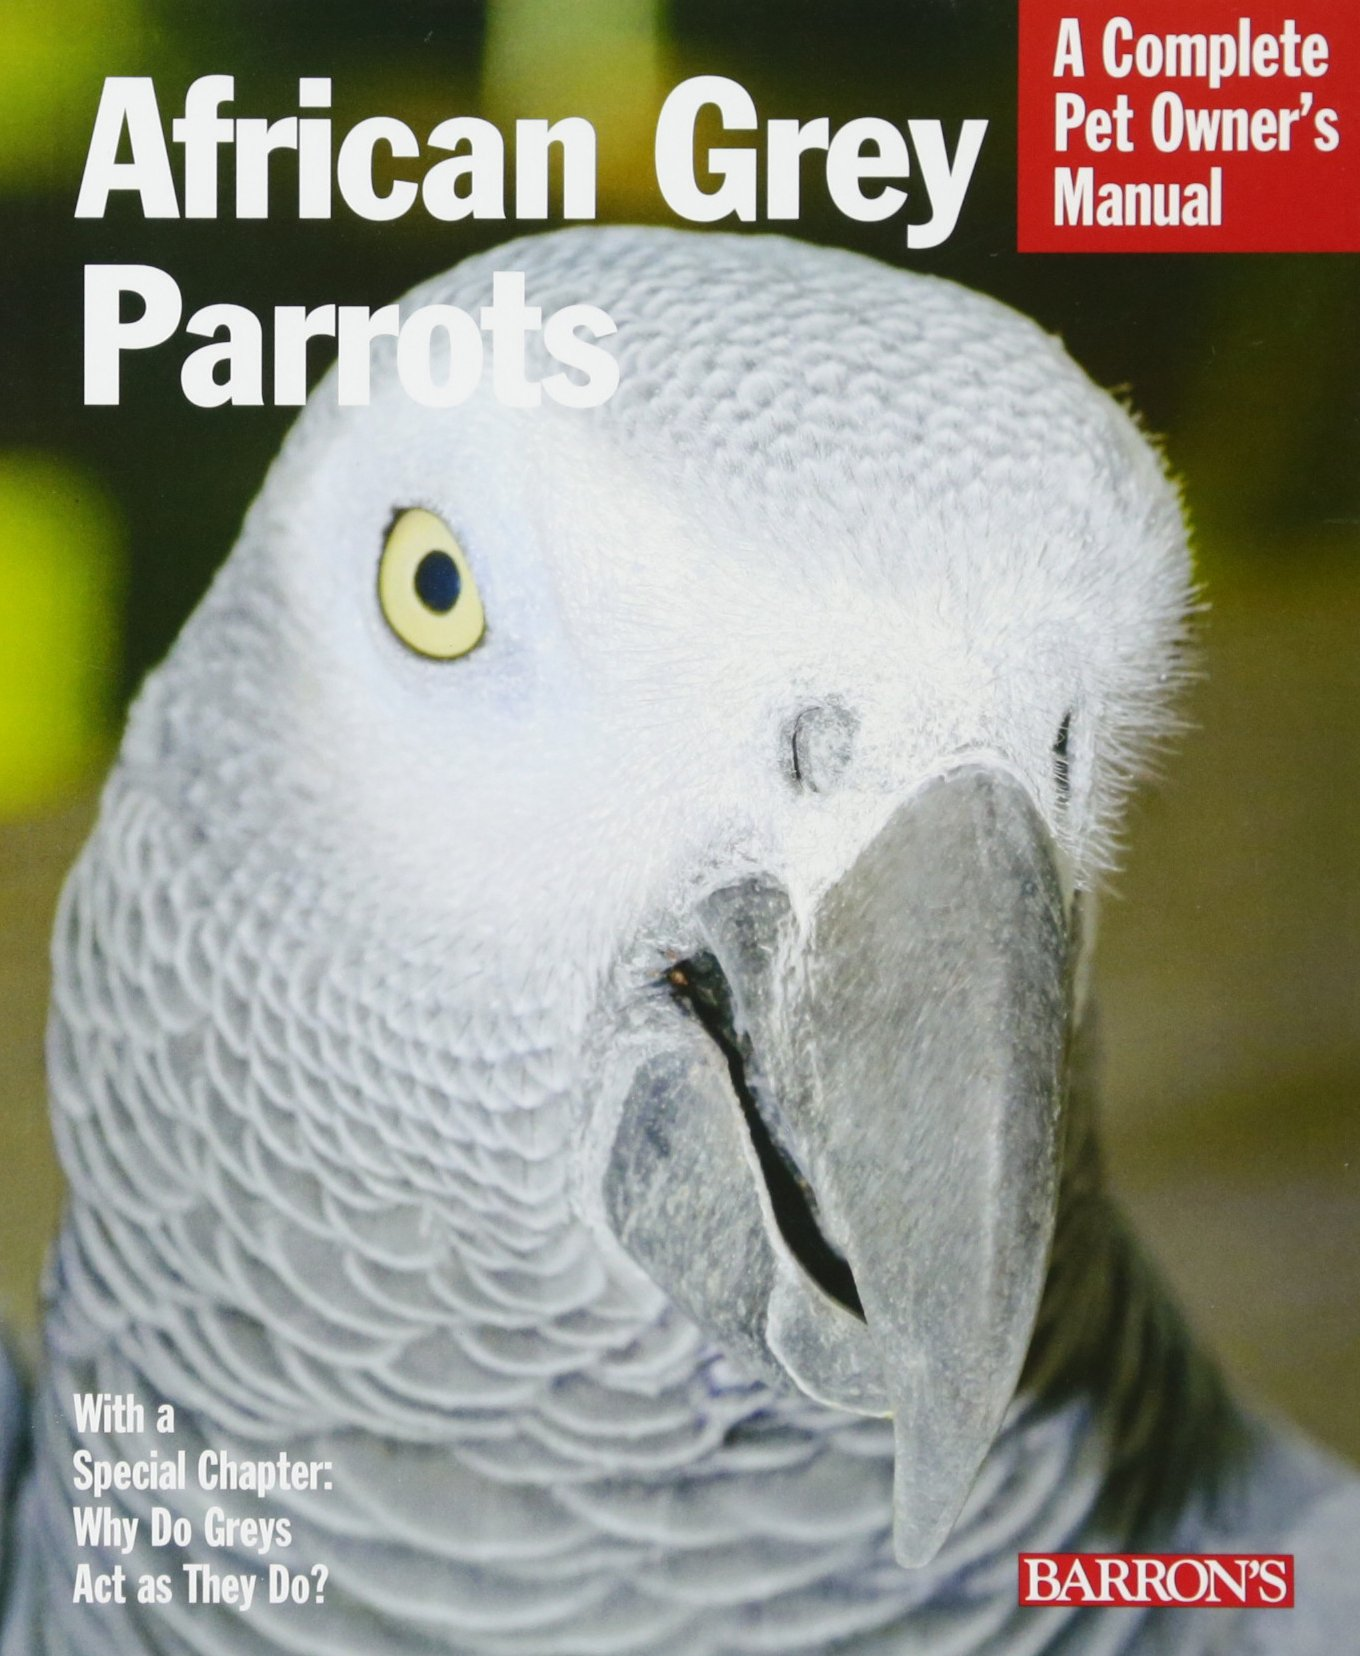 African Grey Parrots (Complete Pet Owner's Manual)